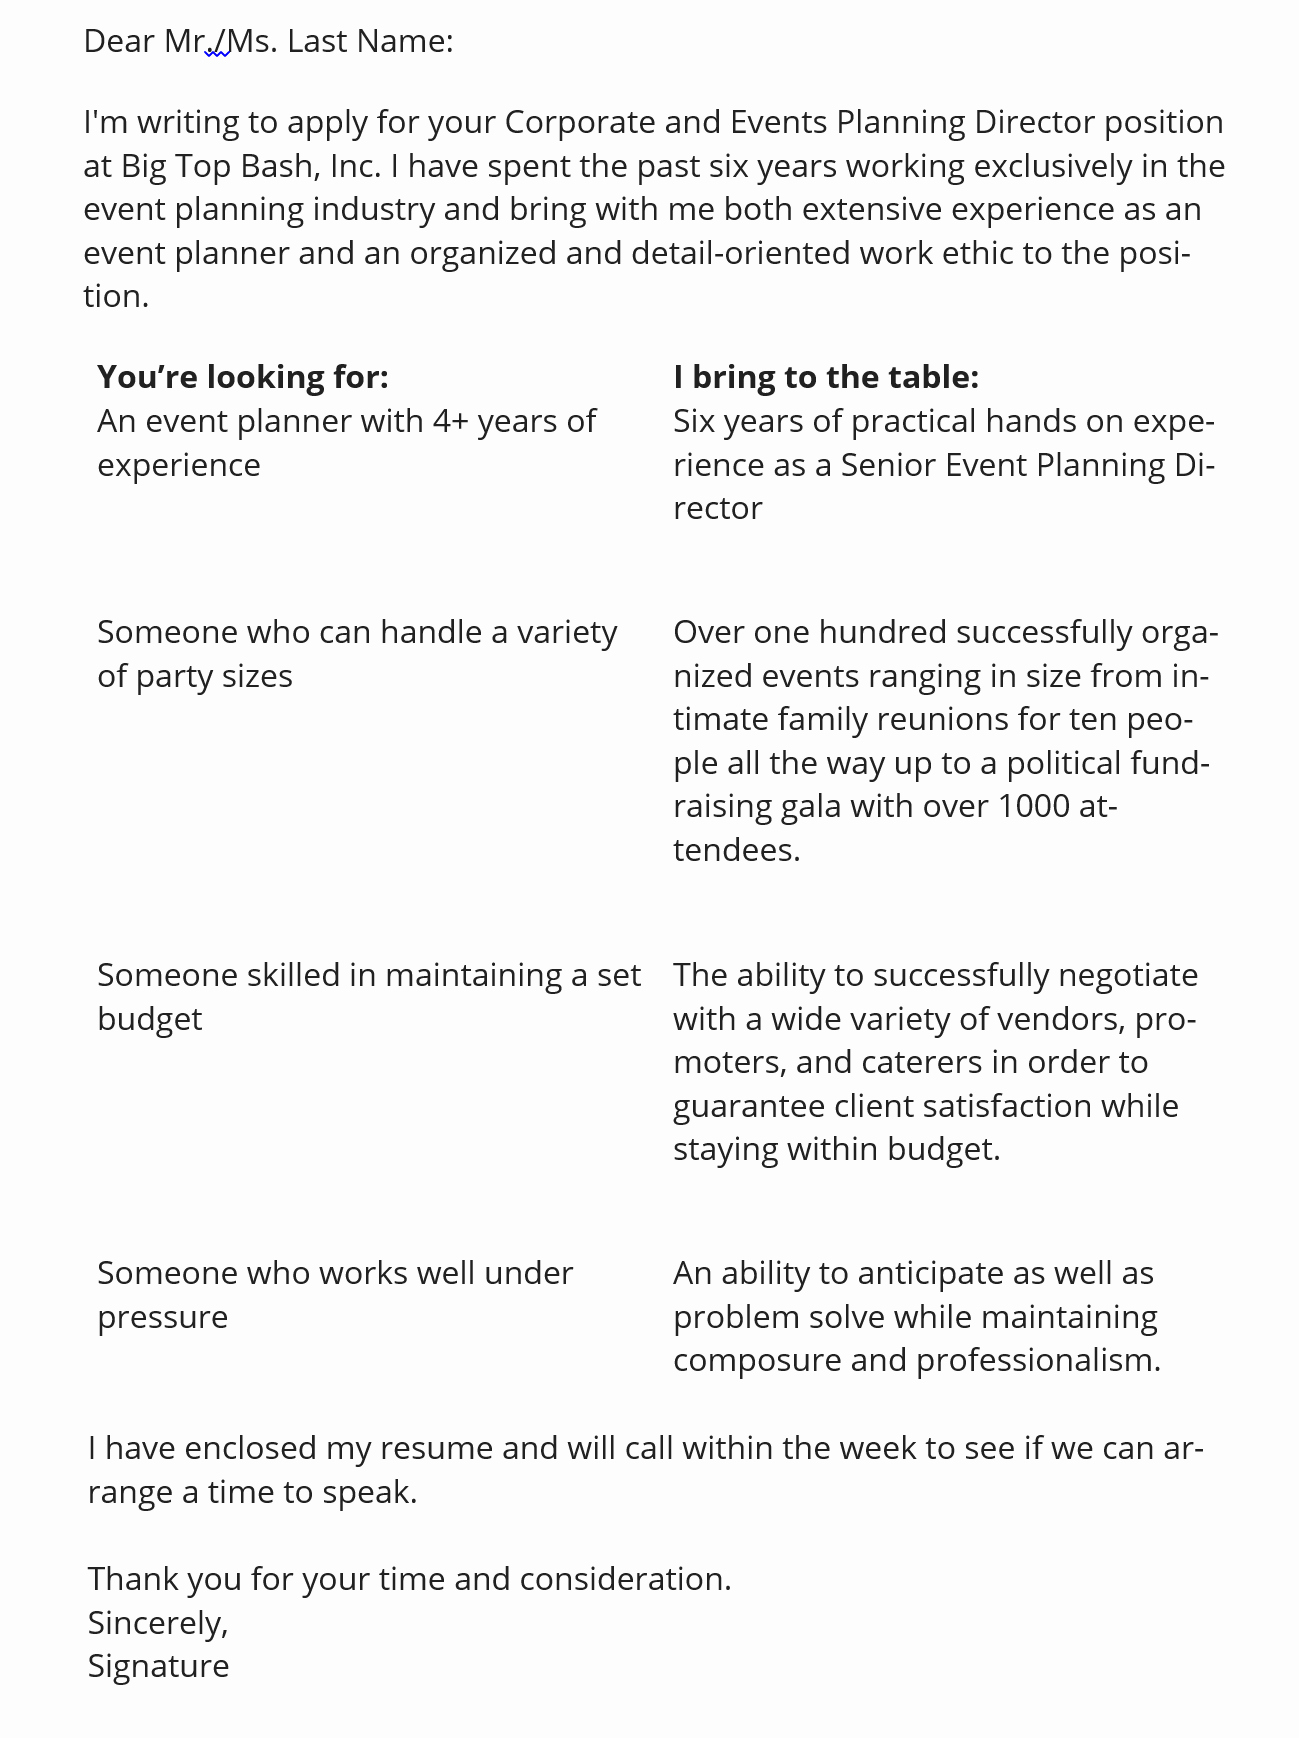 Sample Letters for Employment Awesome the Best Cover Letter format for 2019 [3 Sample Templates